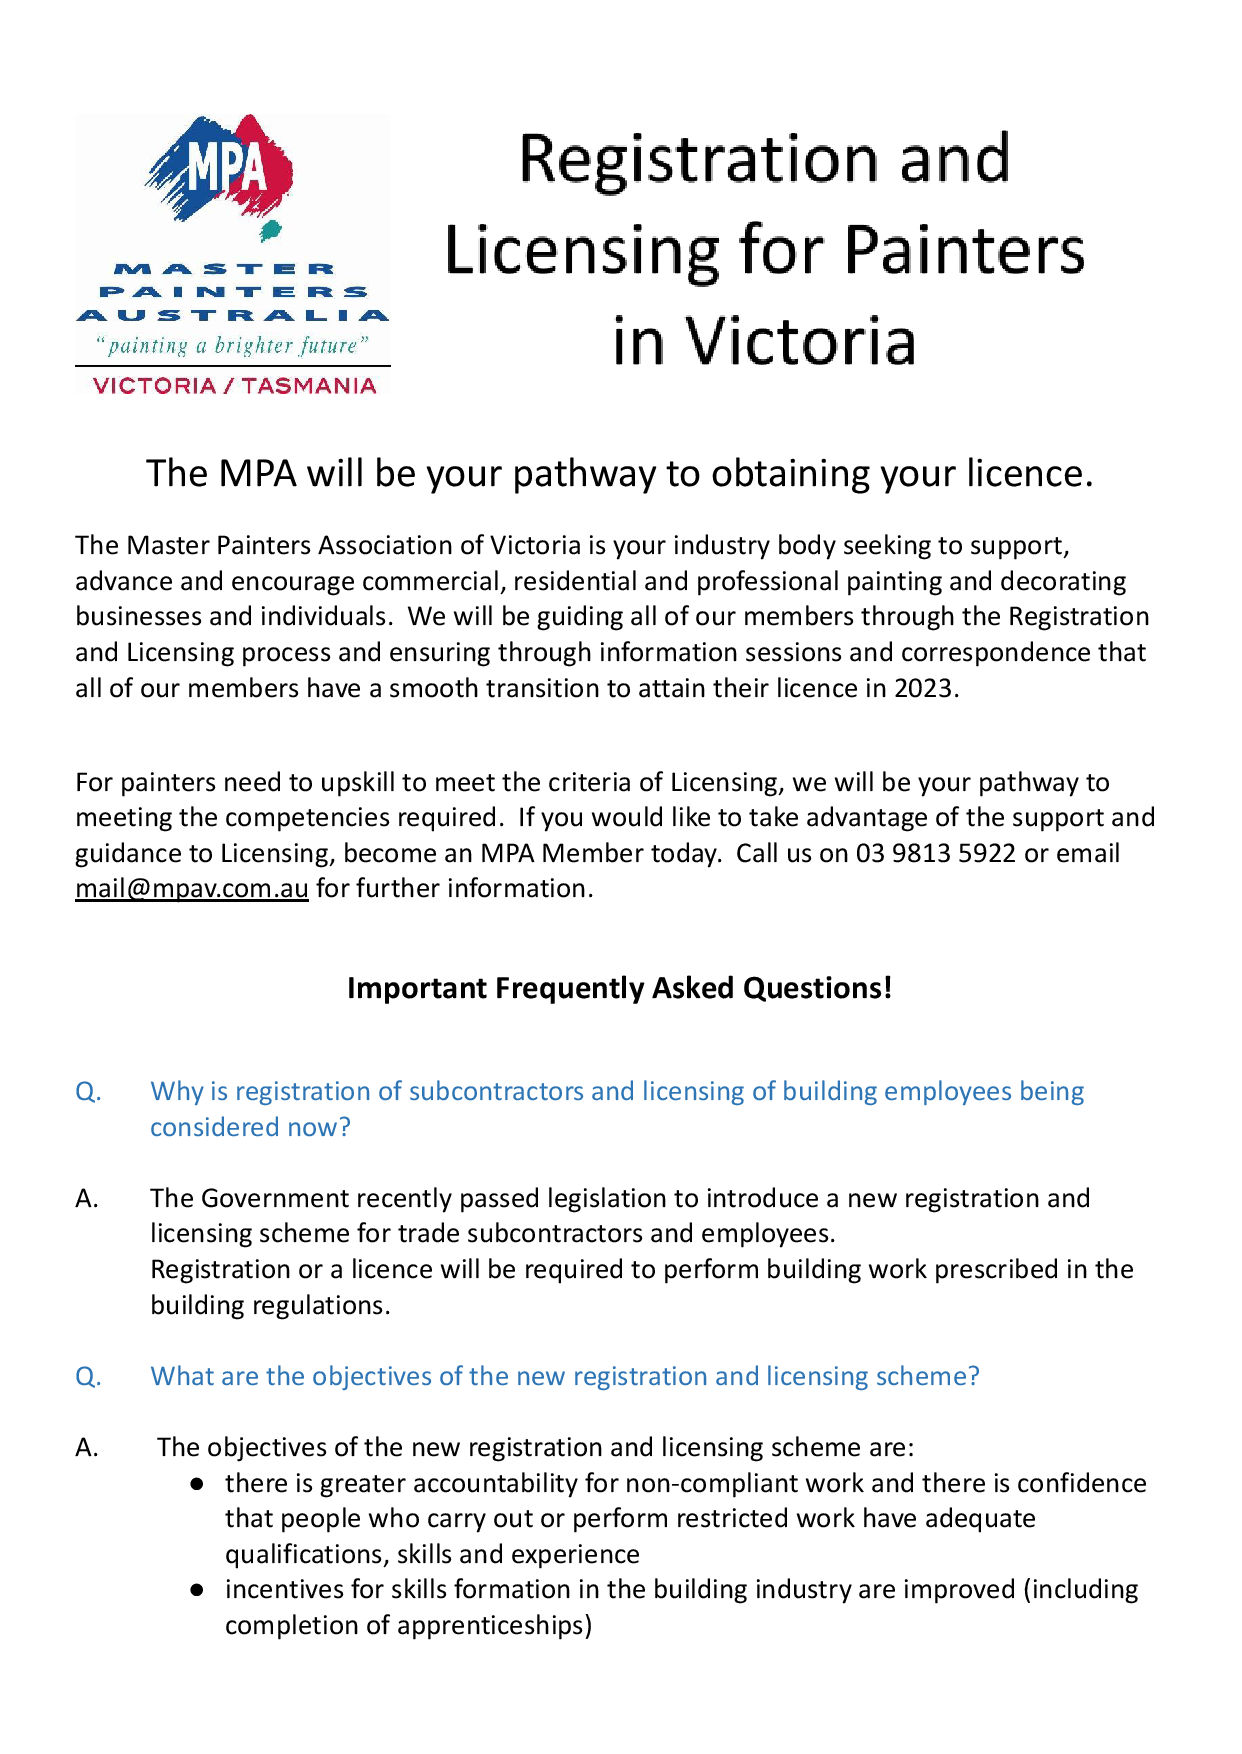 The MPA will be your pathway to obtaining your licence. 1